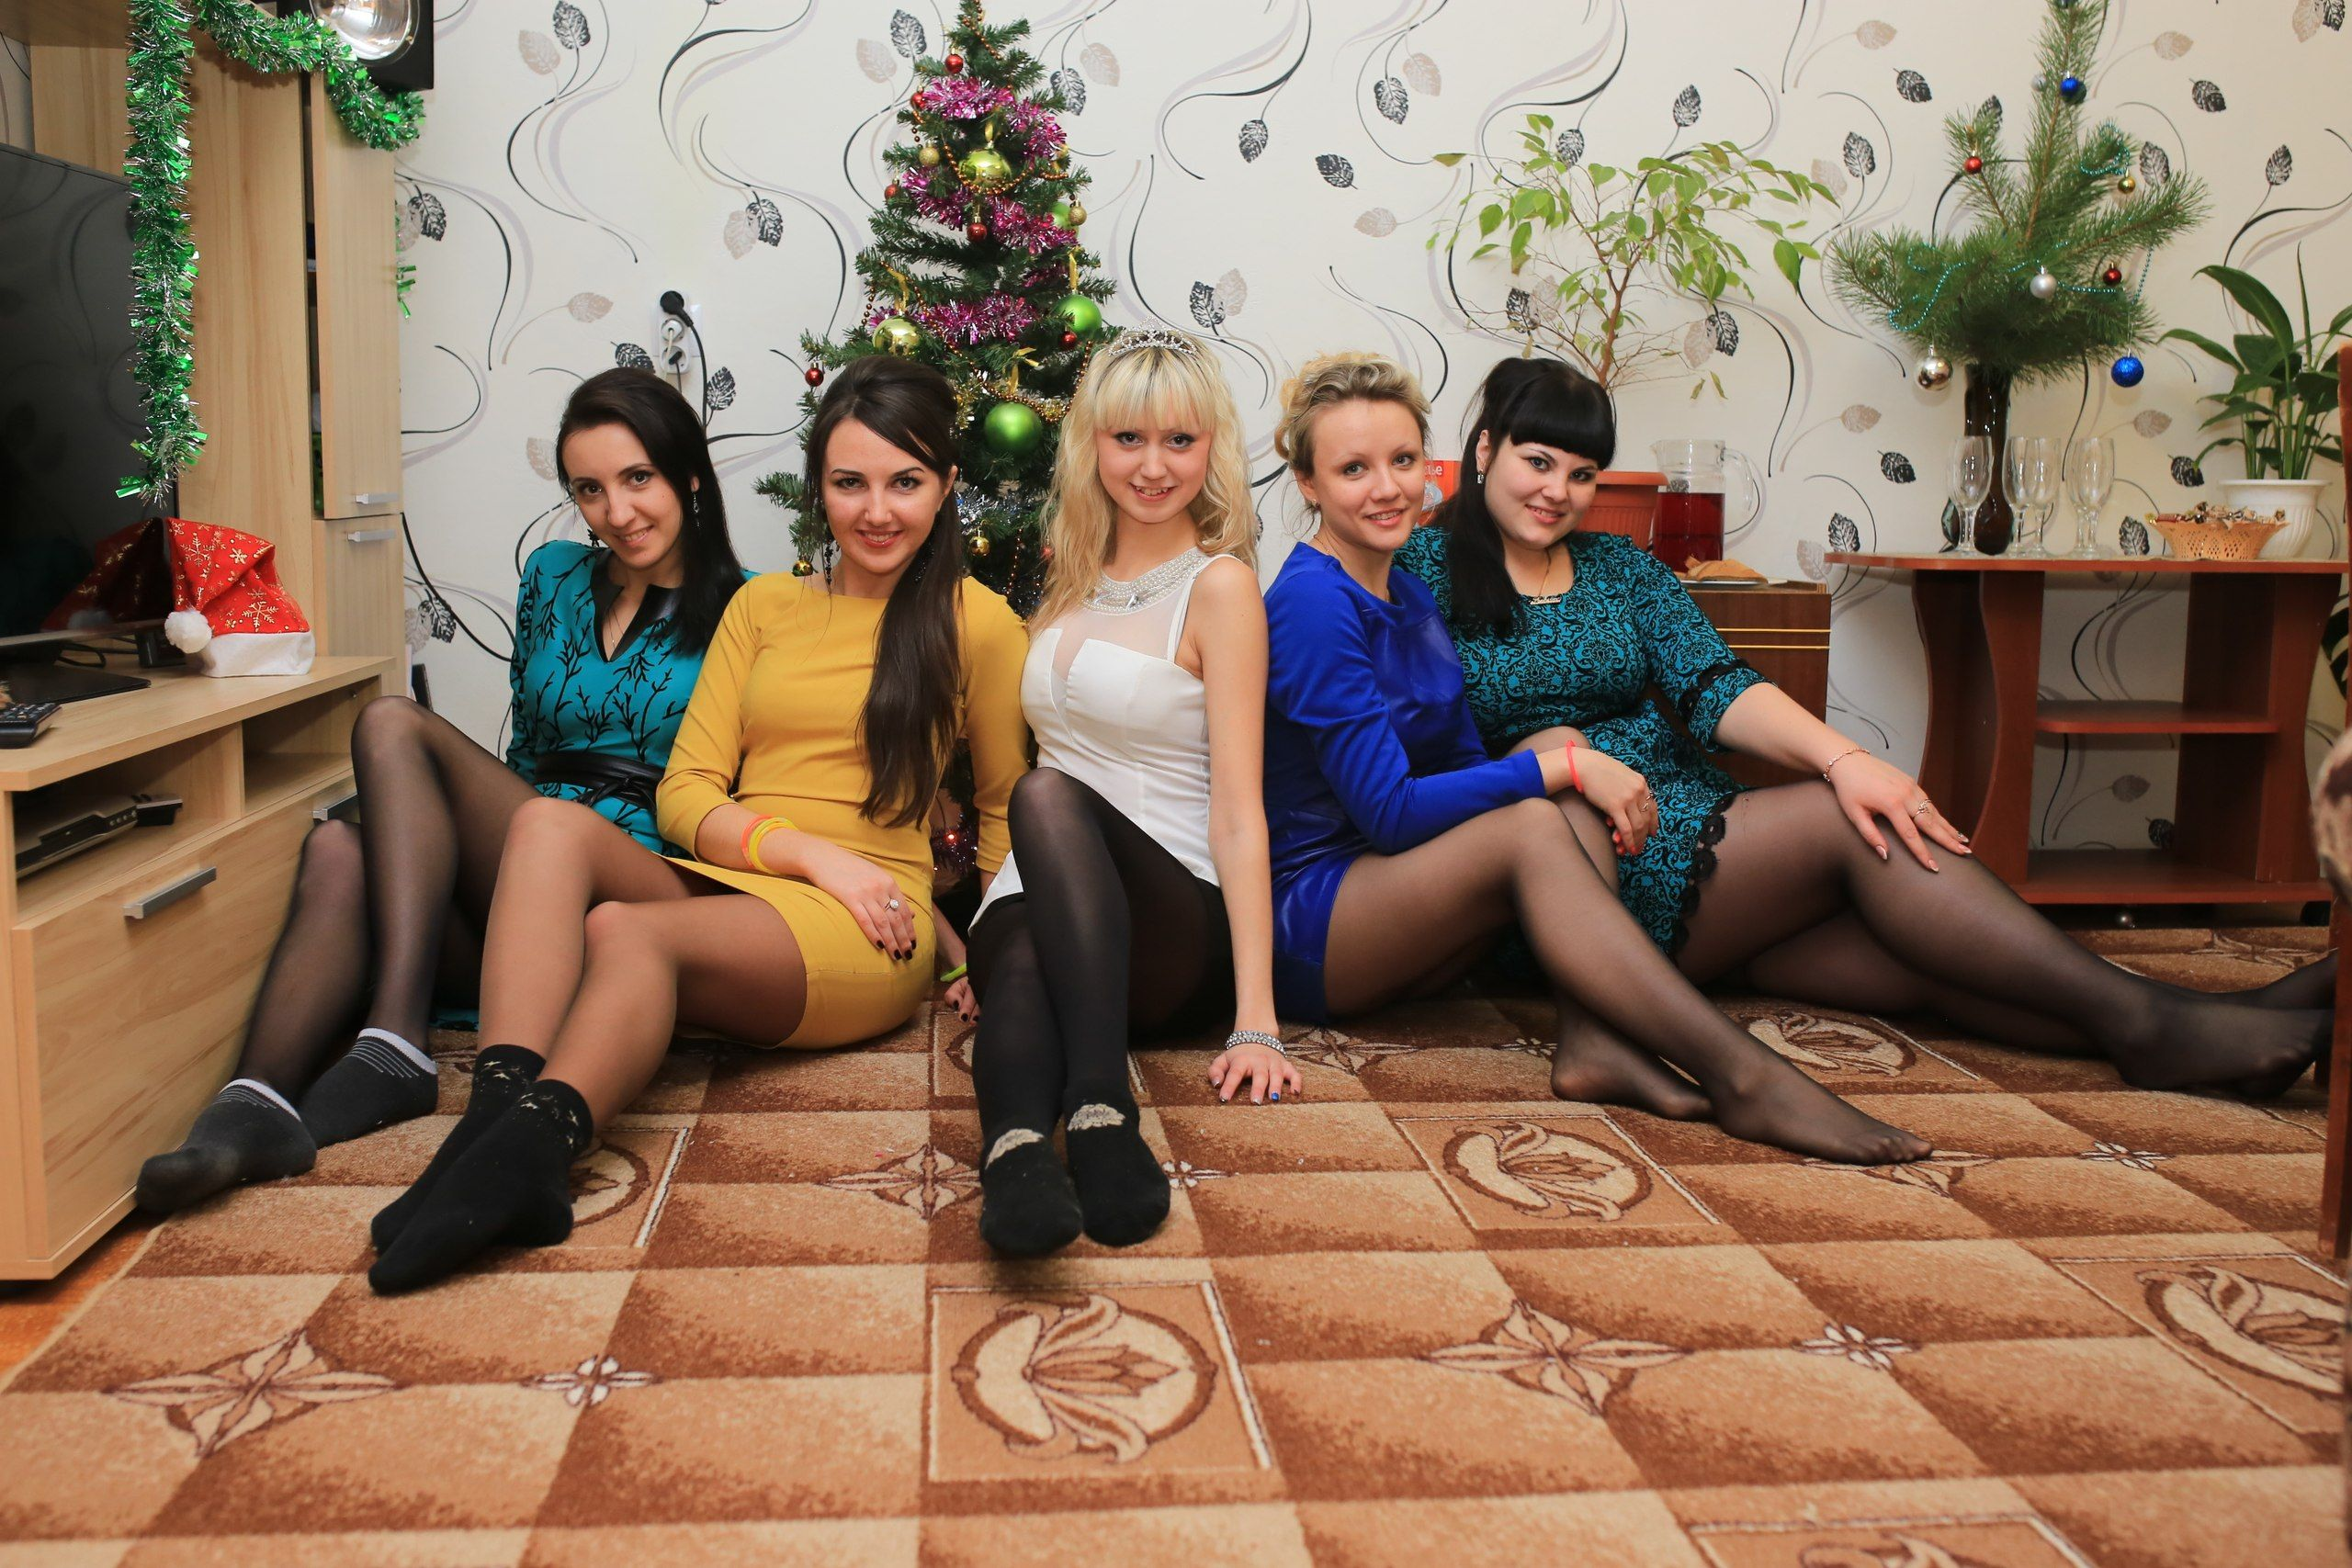 Party of five pantyhose